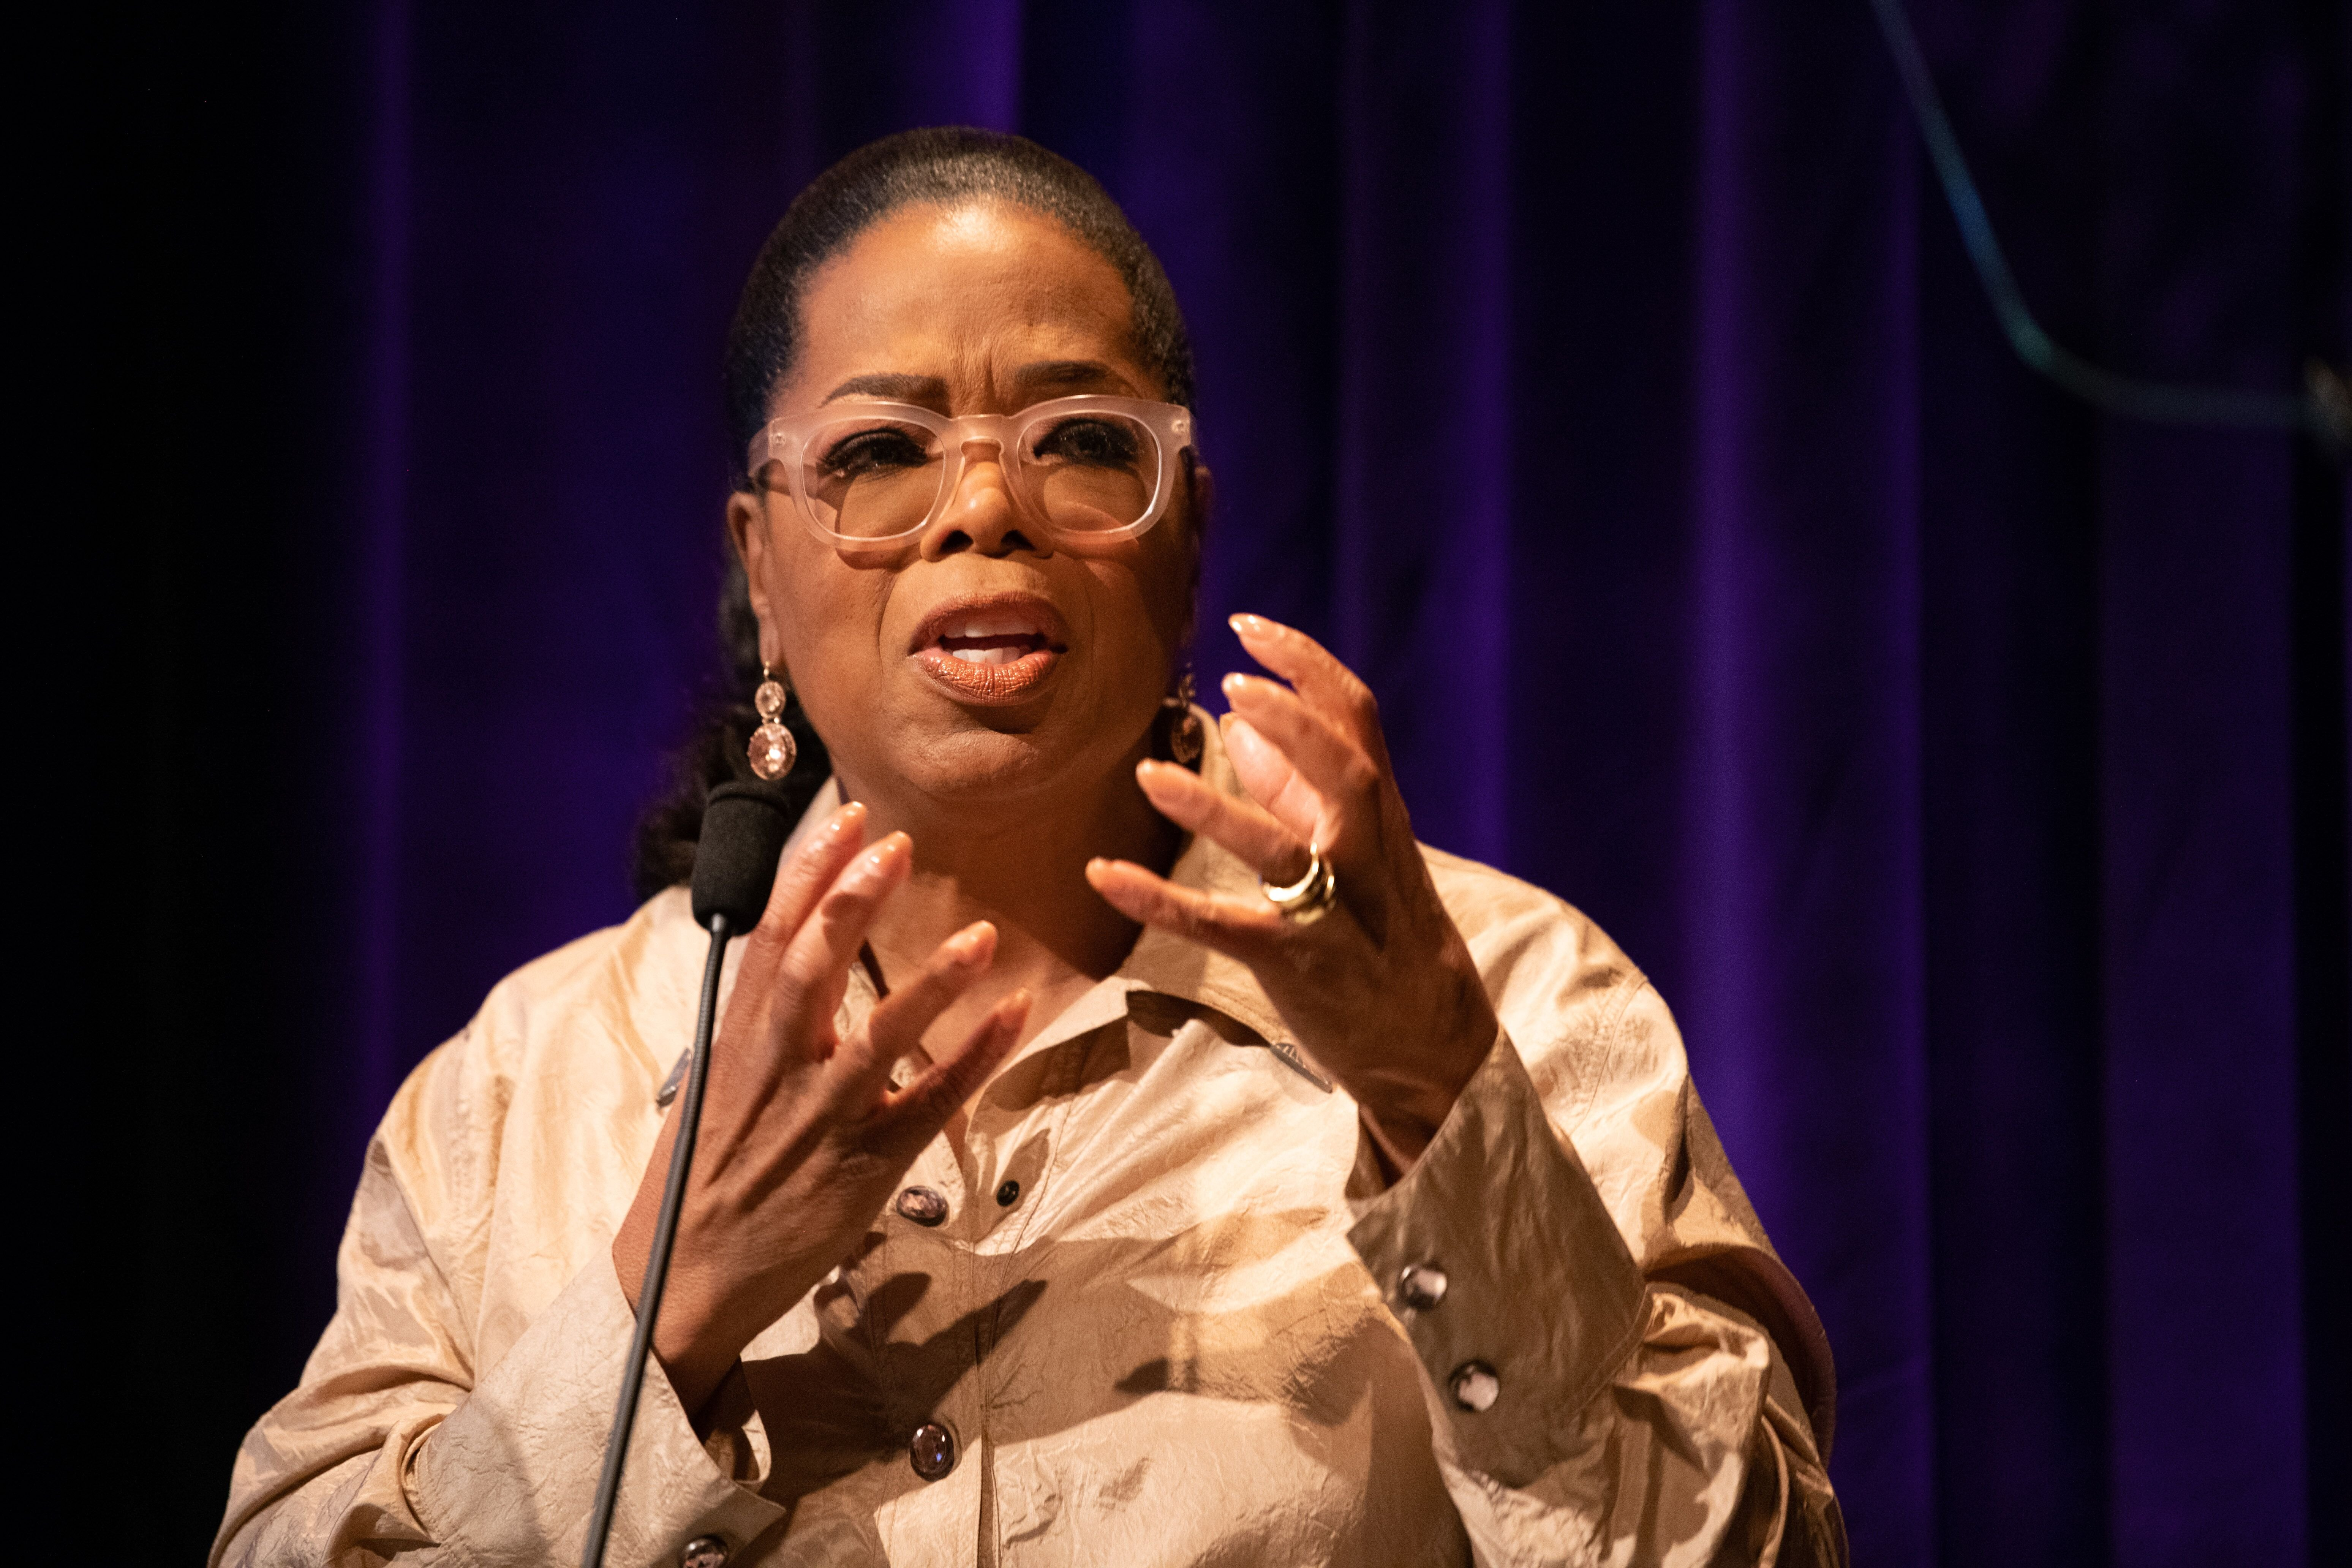 Oprah Winfrey speaks onstage at the Women's E3 Summit | Source: Getty Images